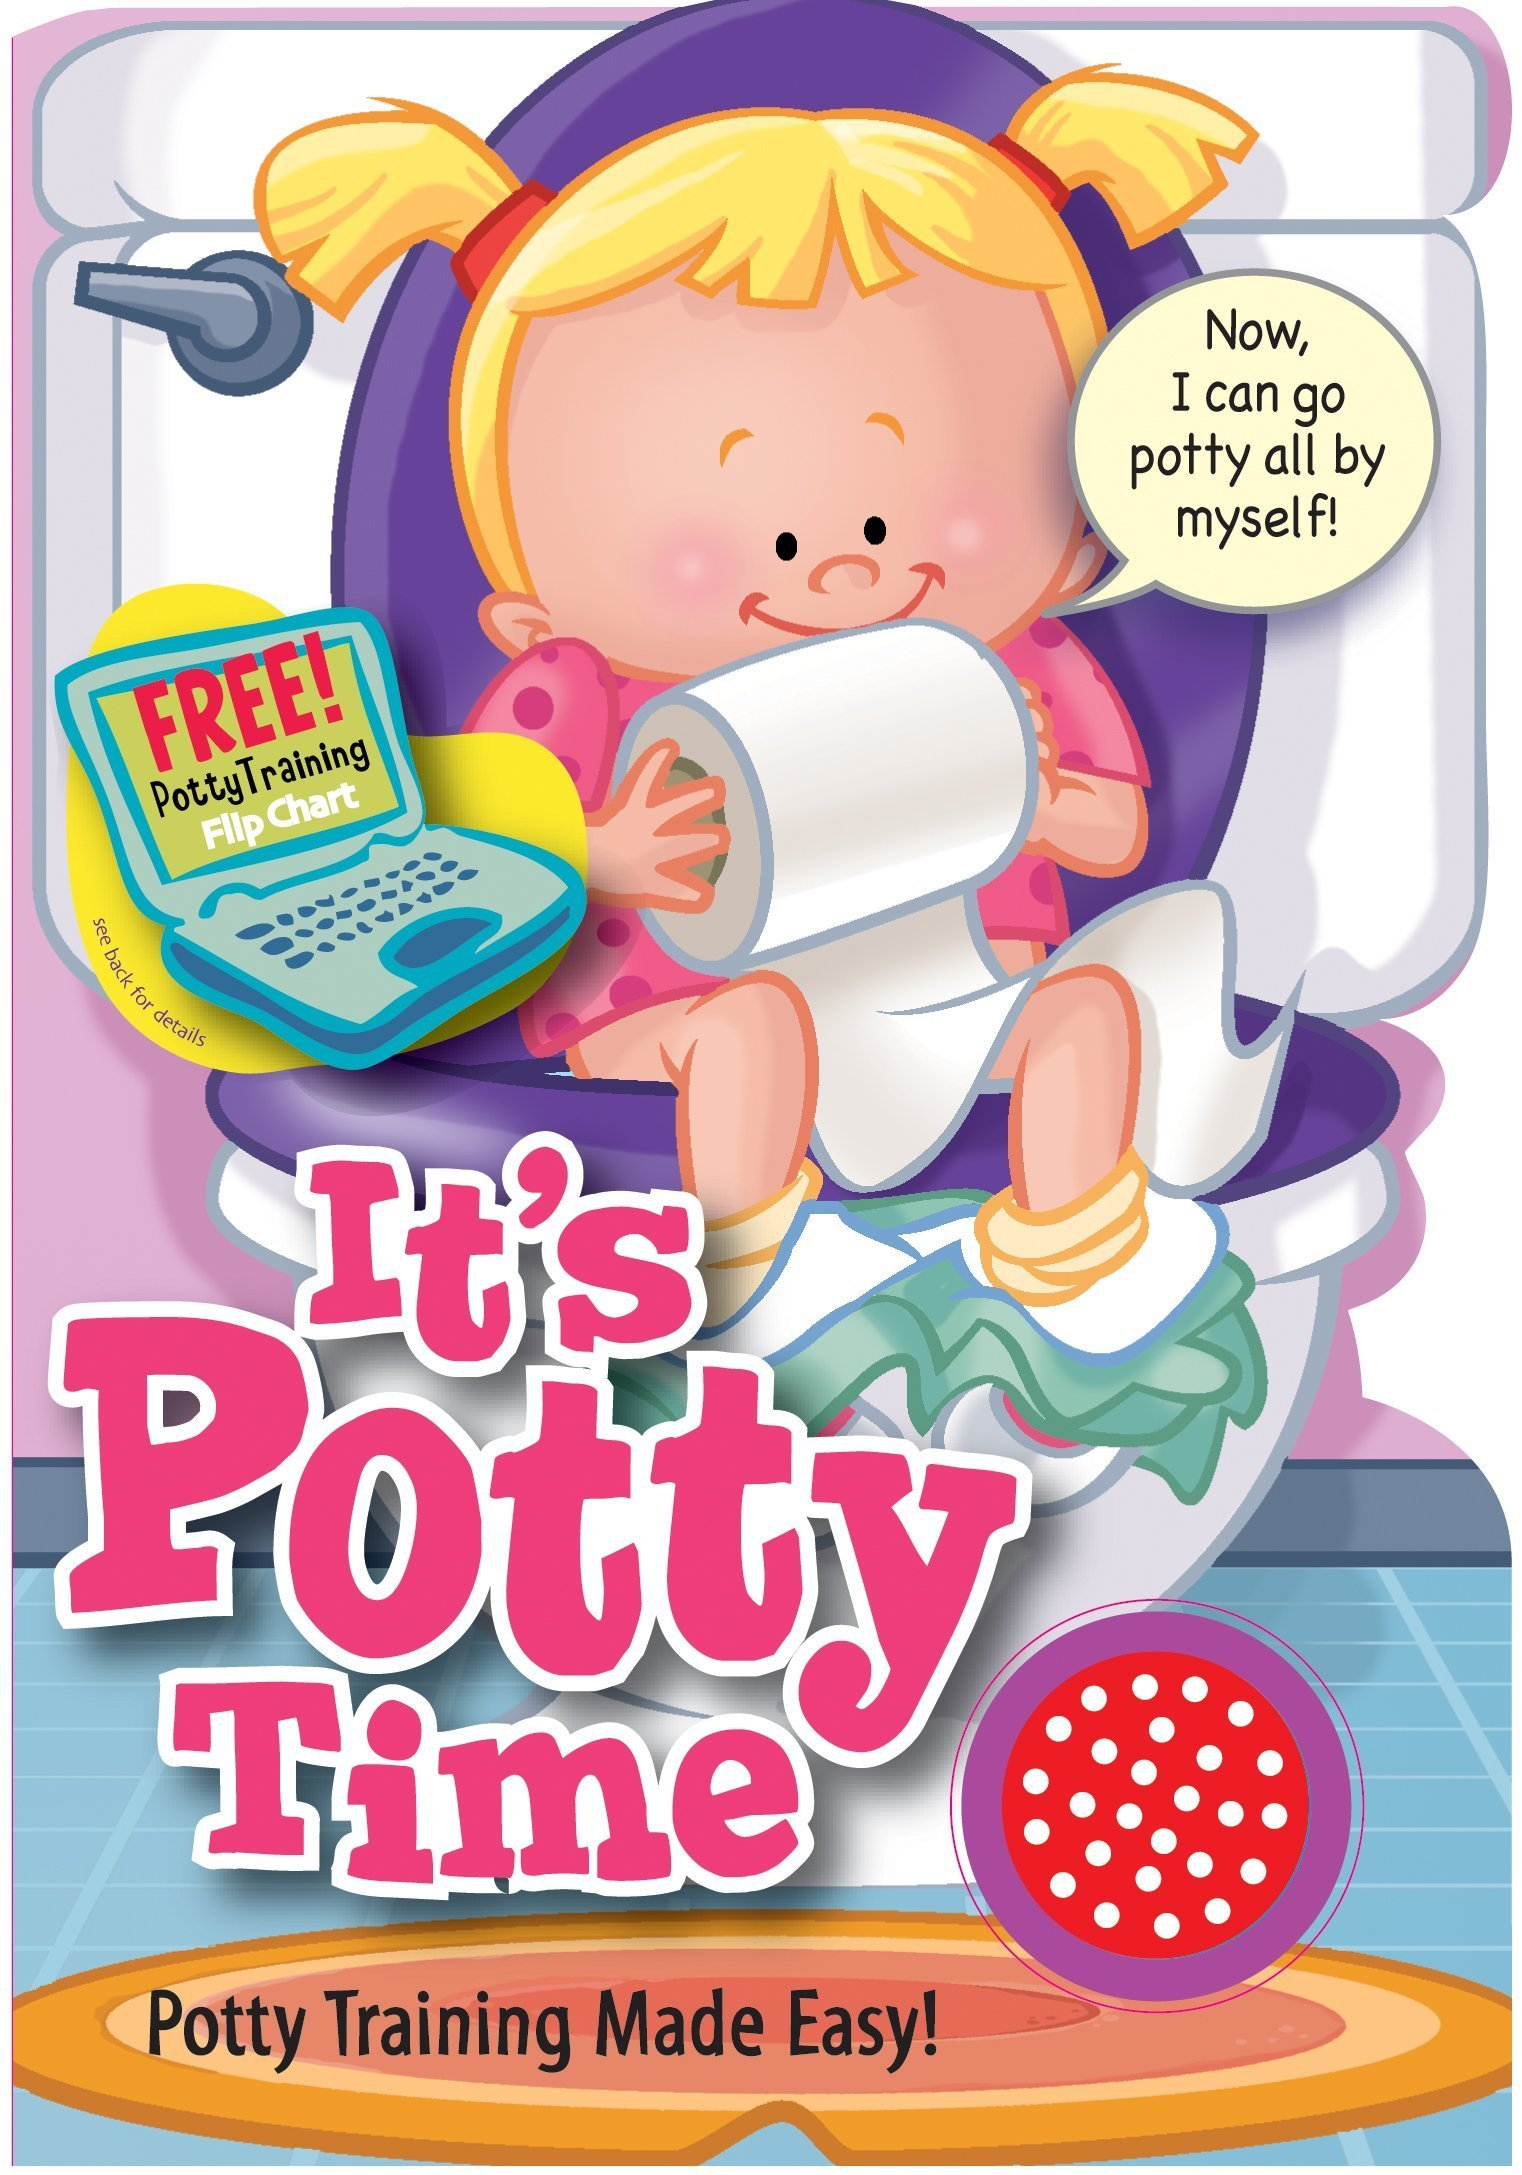 it s potty time girls time to edited chris sharp gary it s potty time girls time to edited chris sharp gary currant 9781591258421 amazon com books